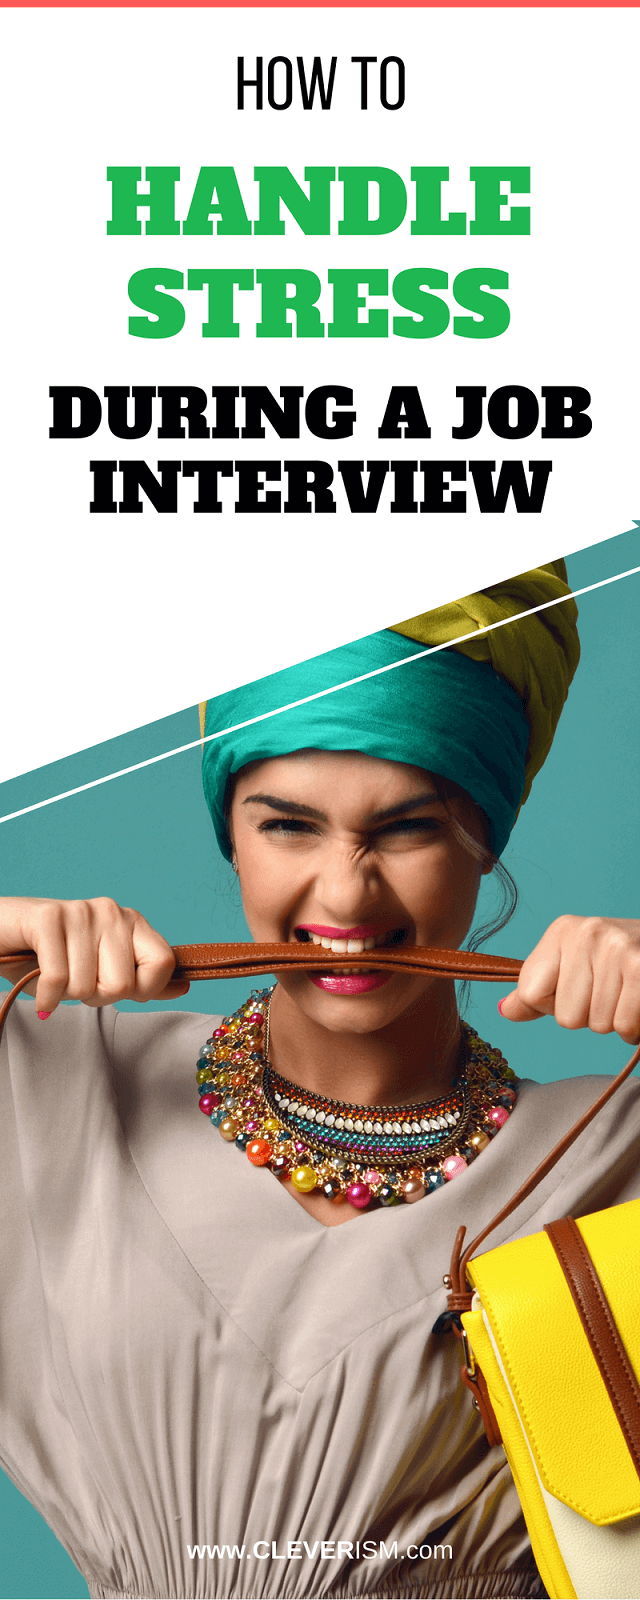 How to Handle Stress During a Job Interview - #JobInterview #HandleStress #StessDuringJobInterview #Cleverism #JobSearch